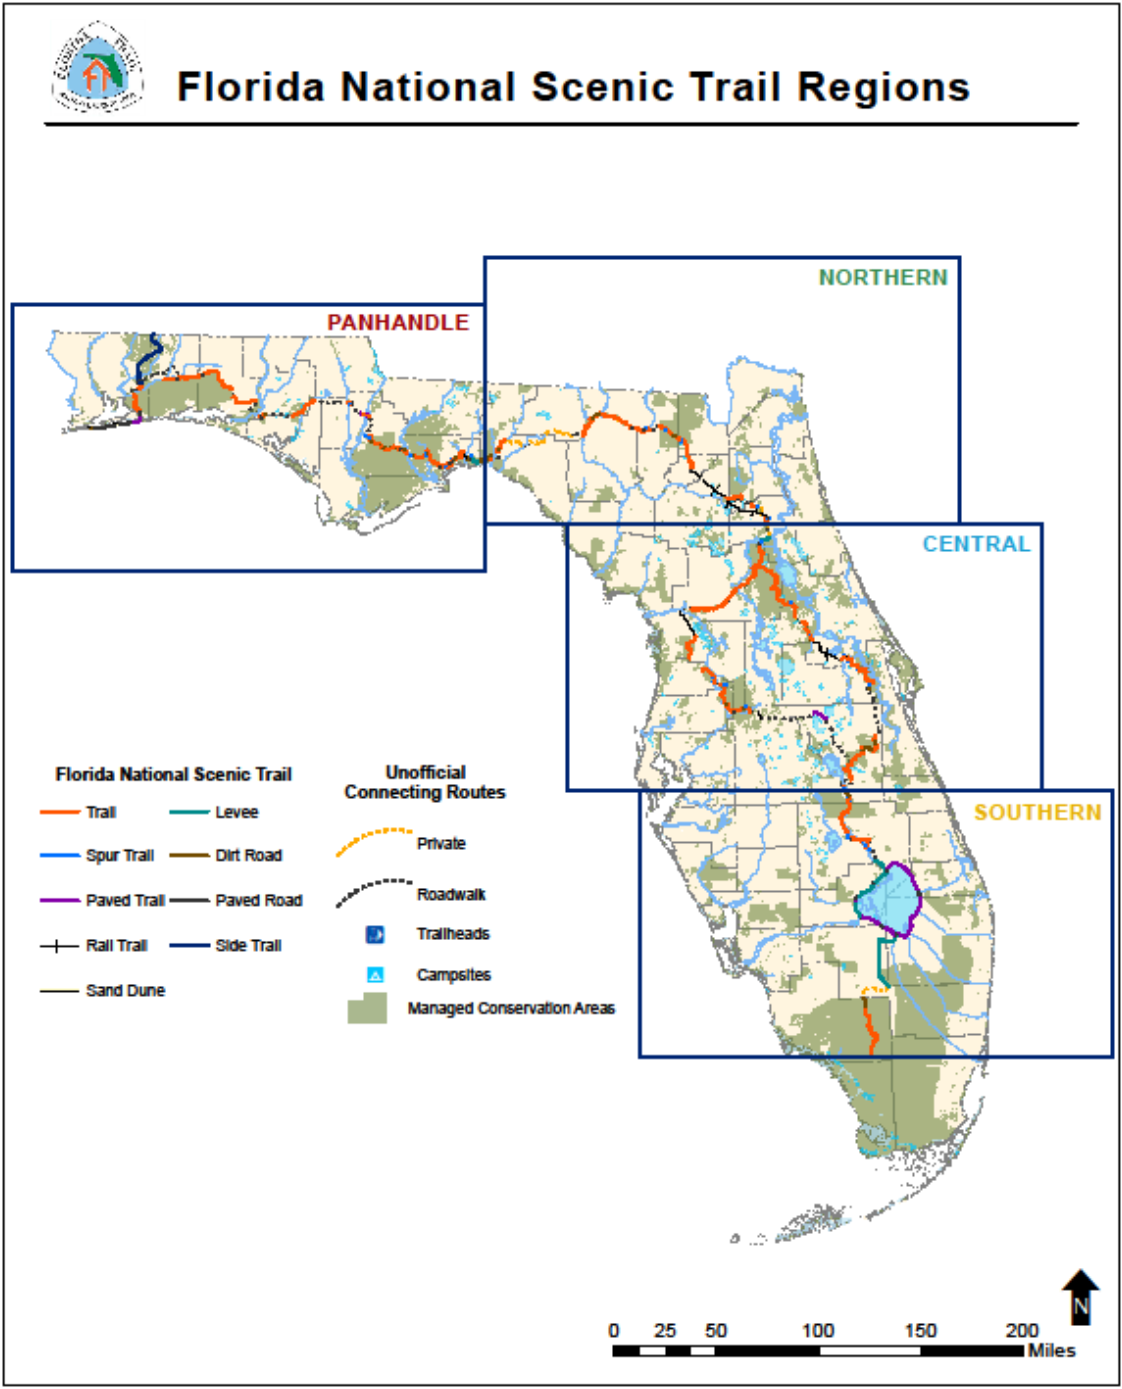 Map of the four geographic regions of the Florida National Scenic Trail